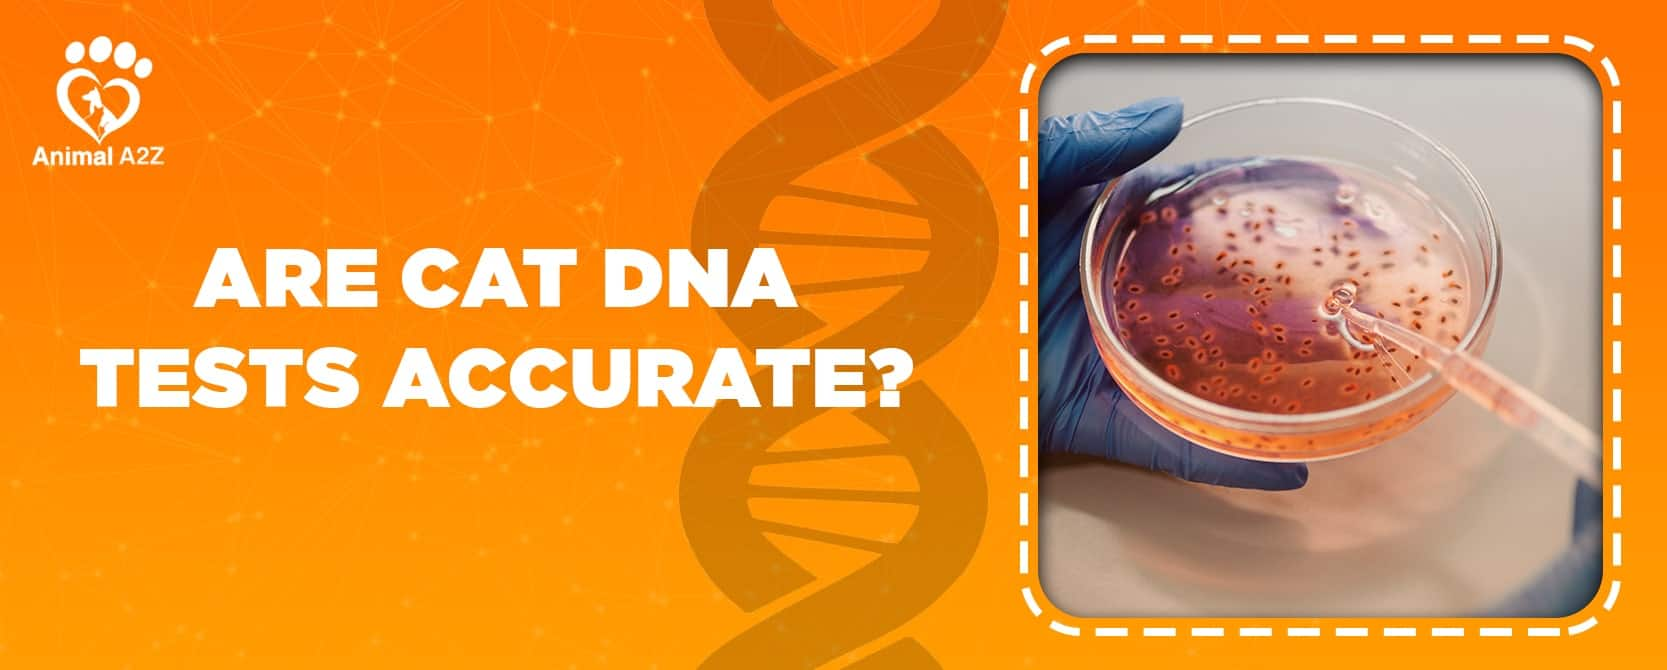 are cat dna tests accurate